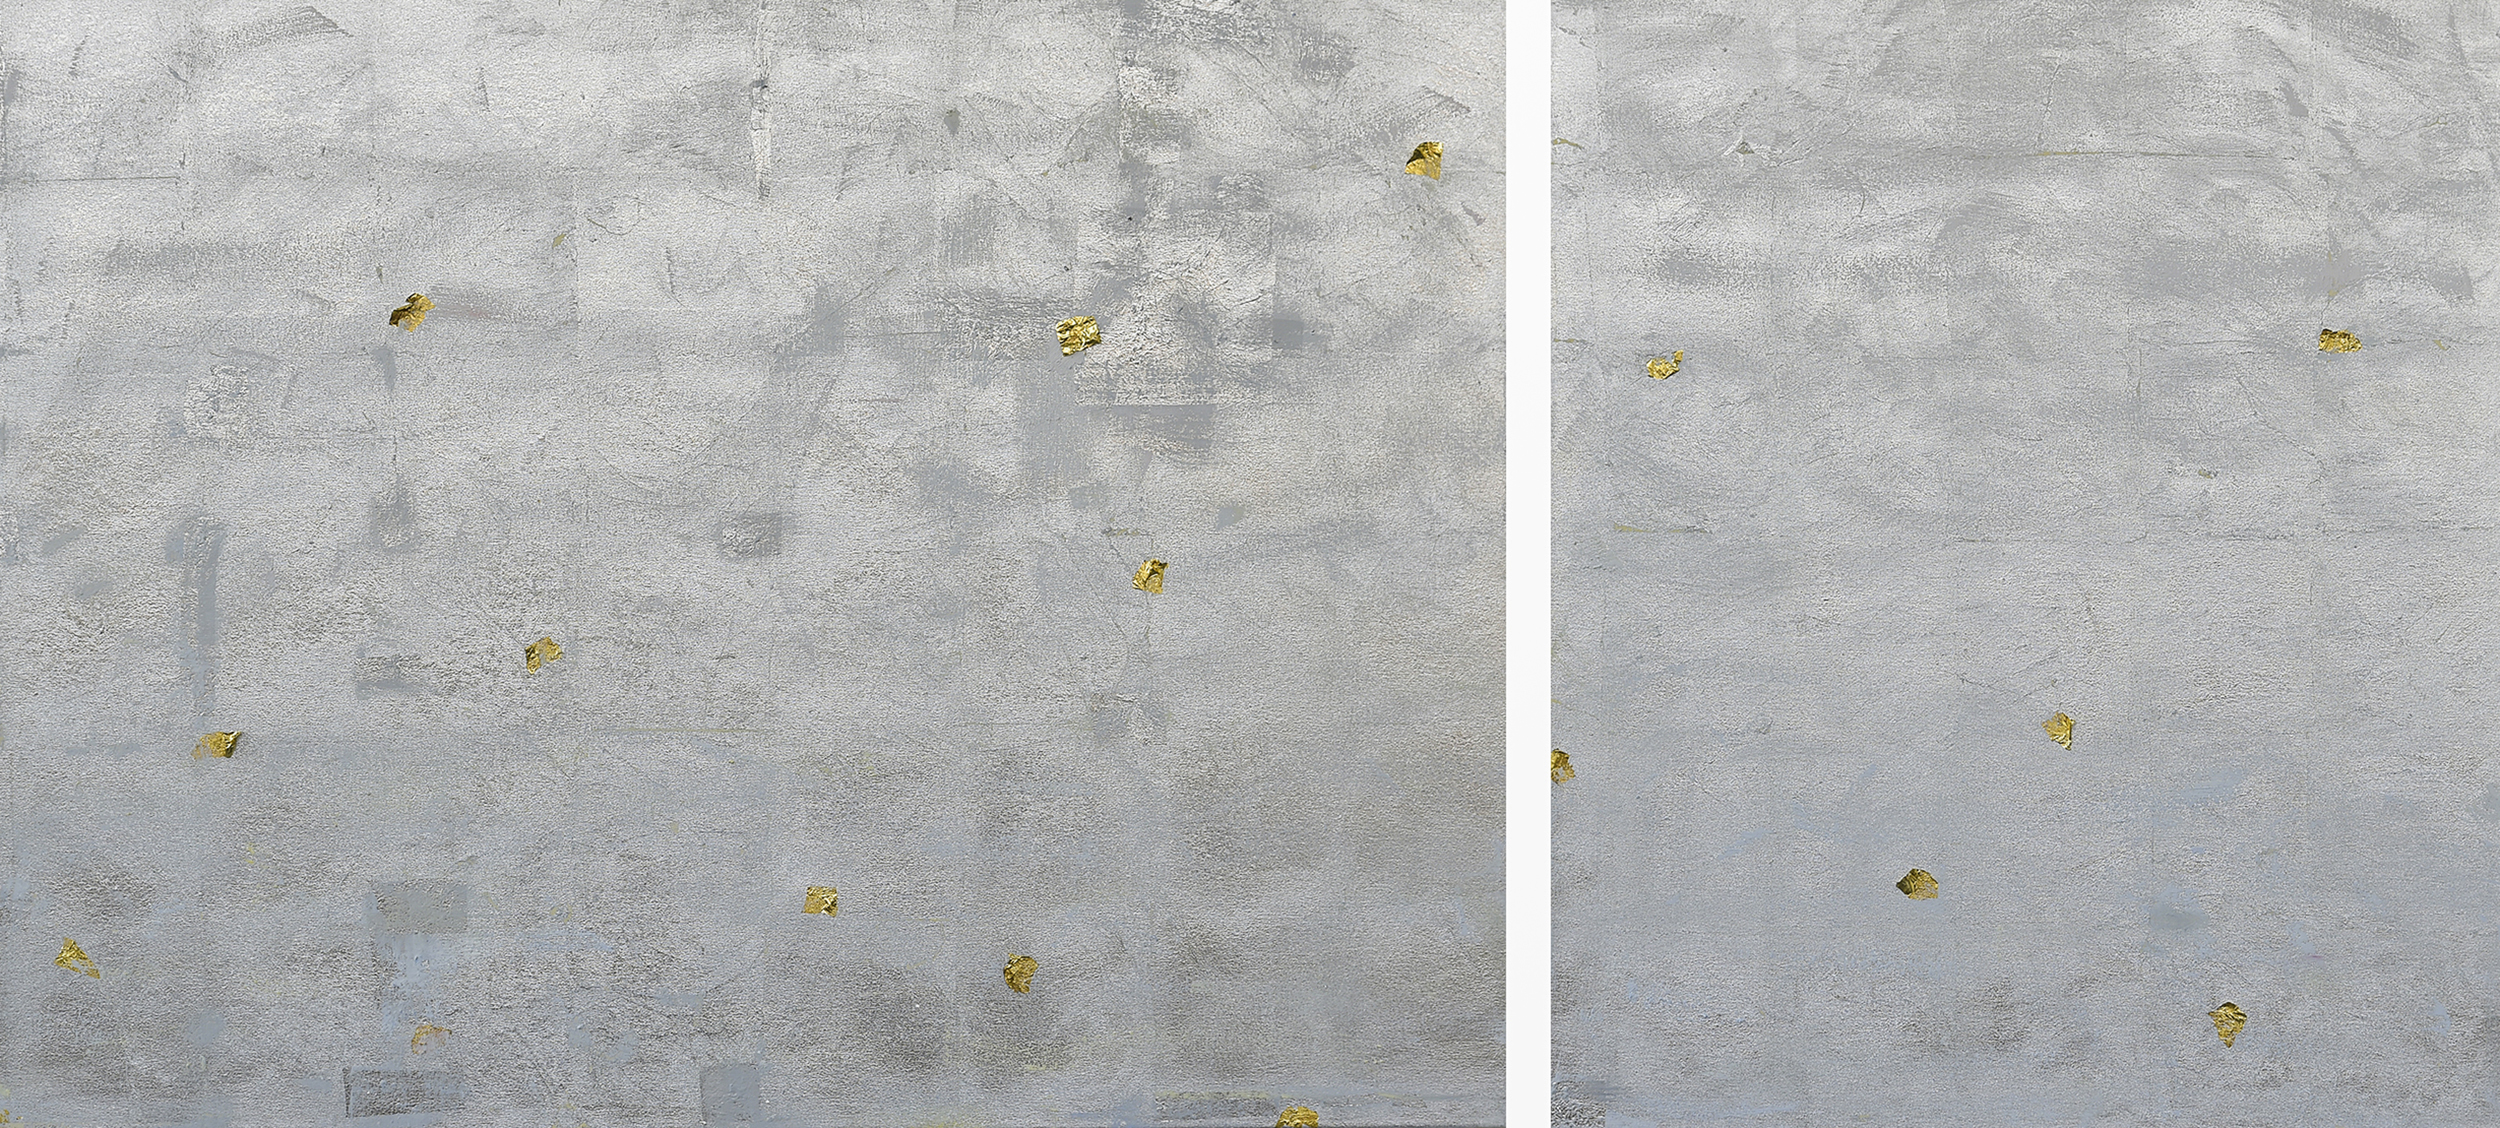 Illusion of Separation#36 x 78 in. total, diptych